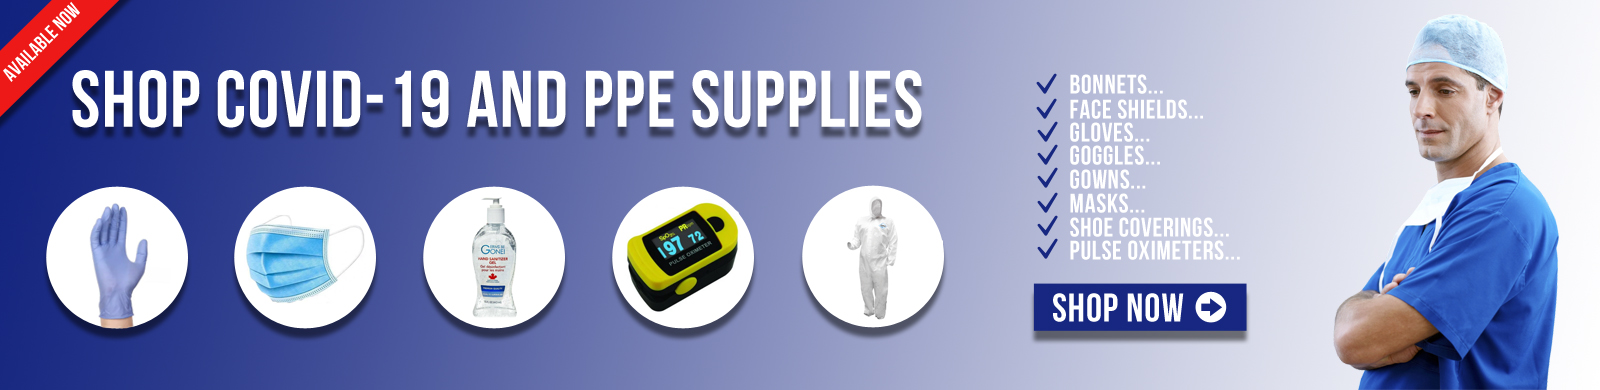 Shop Covid-19 (Coronavirus) and PPE (Personal Protective Equipment) Supplies!